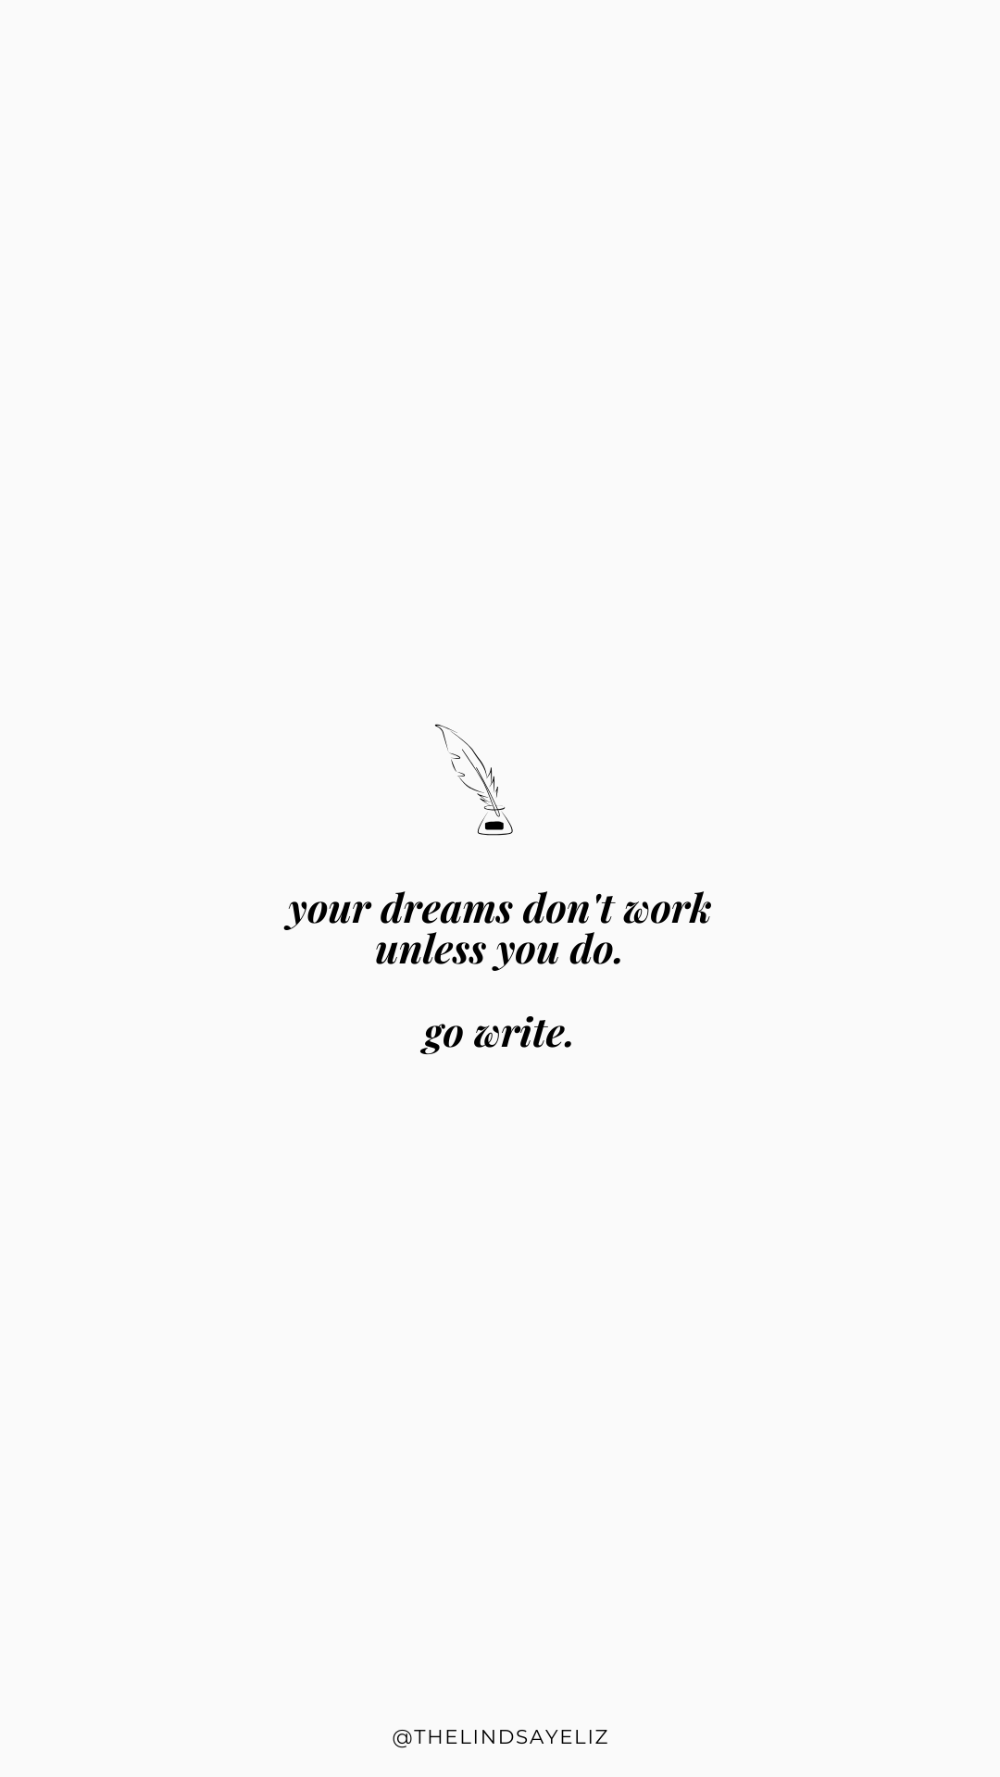 Free Phone Wallpapers For Writers Lindsay Elizabeth Writing Quotes Inspirational Free Phone Wallpaper Phone Inspiration